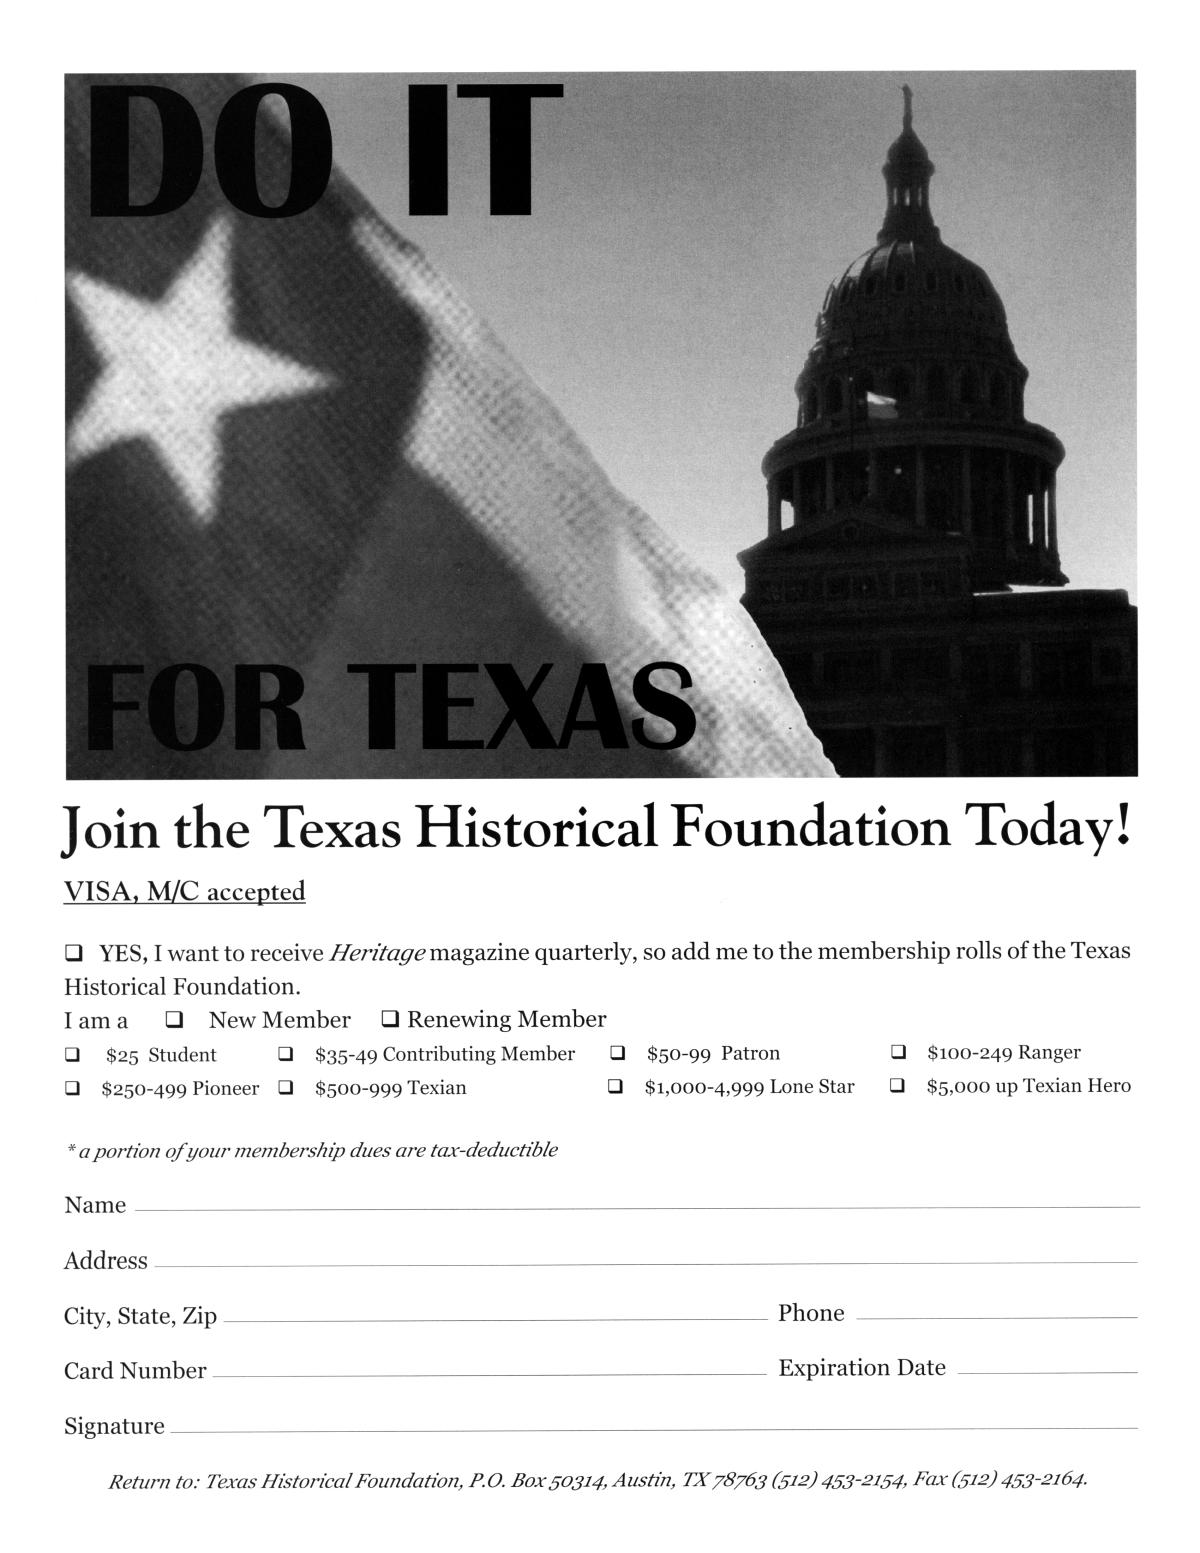 Texas Heritage, Volume 18, Number 3, Summer 2000                                                                                                      13